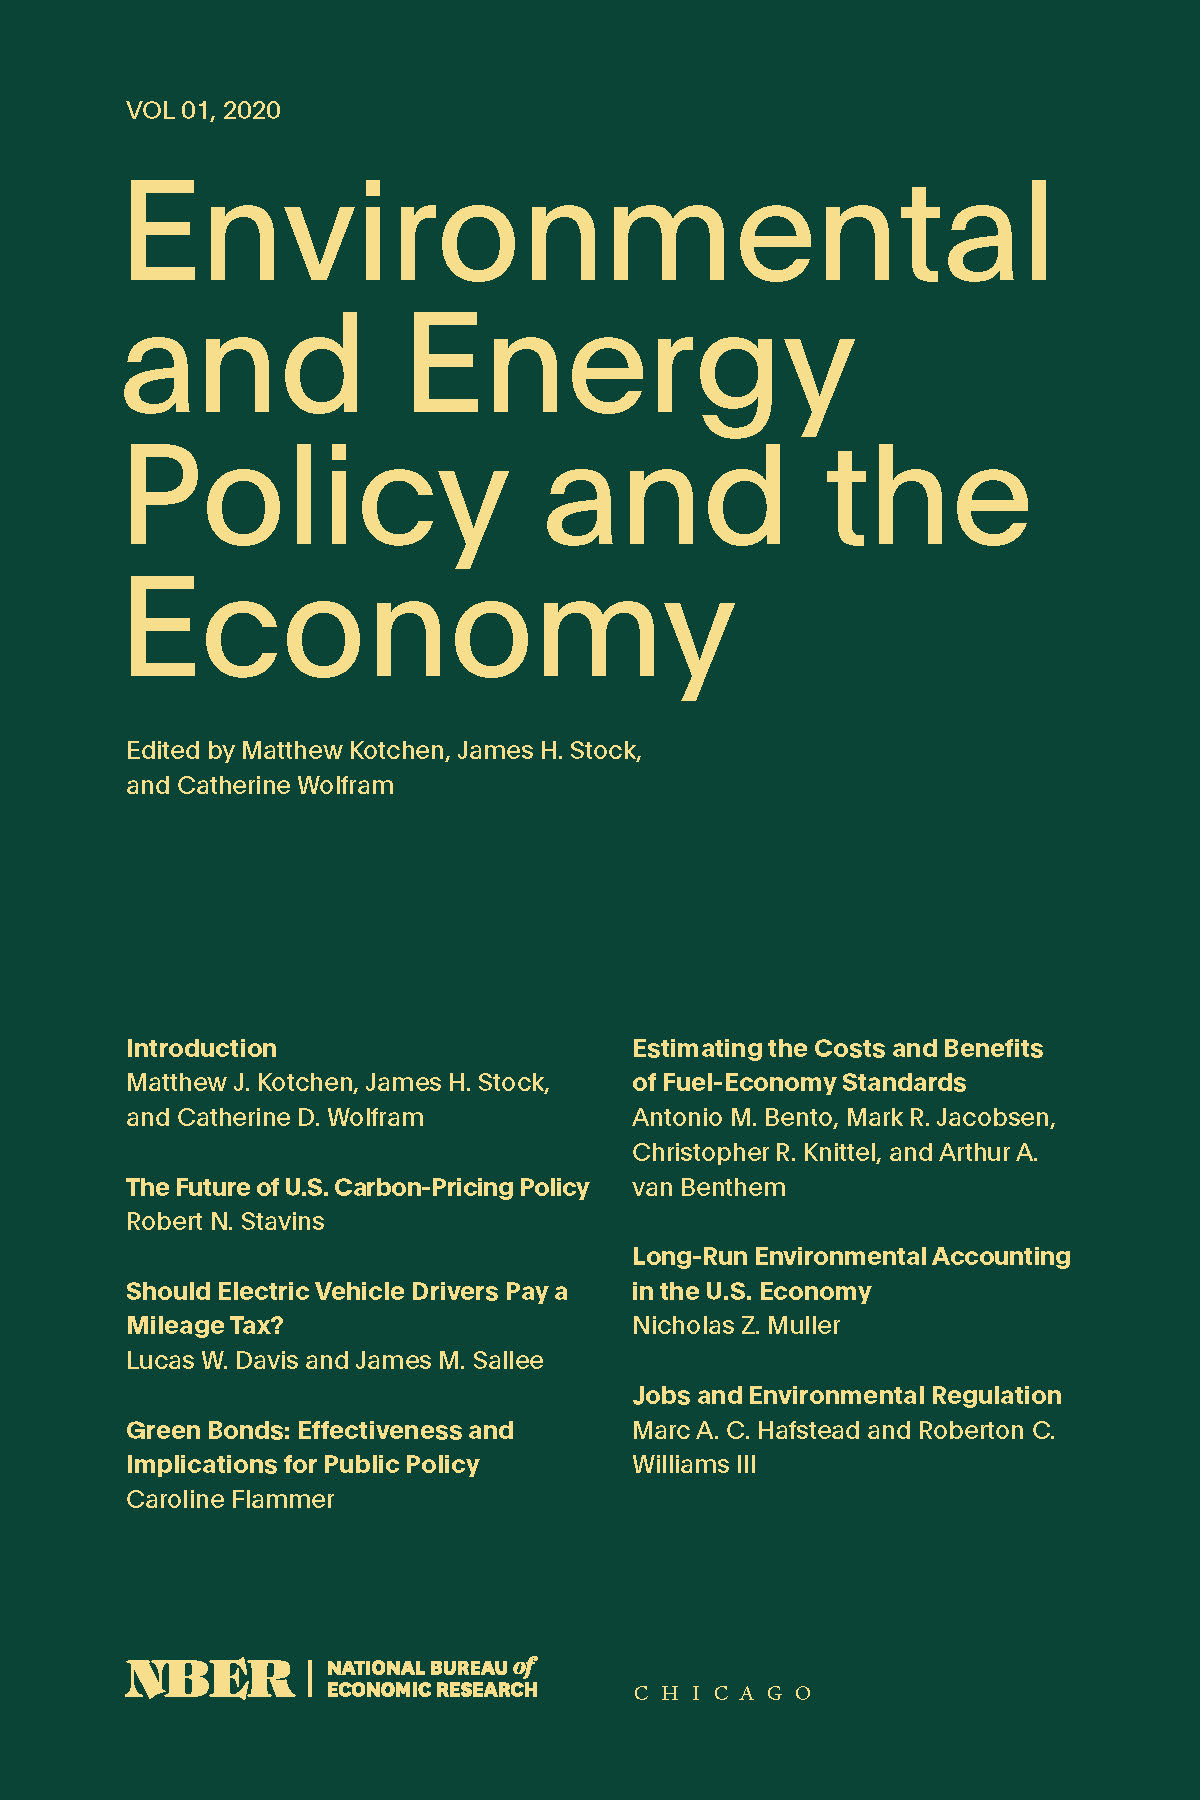 Environmental and Energy Policy and the Economy